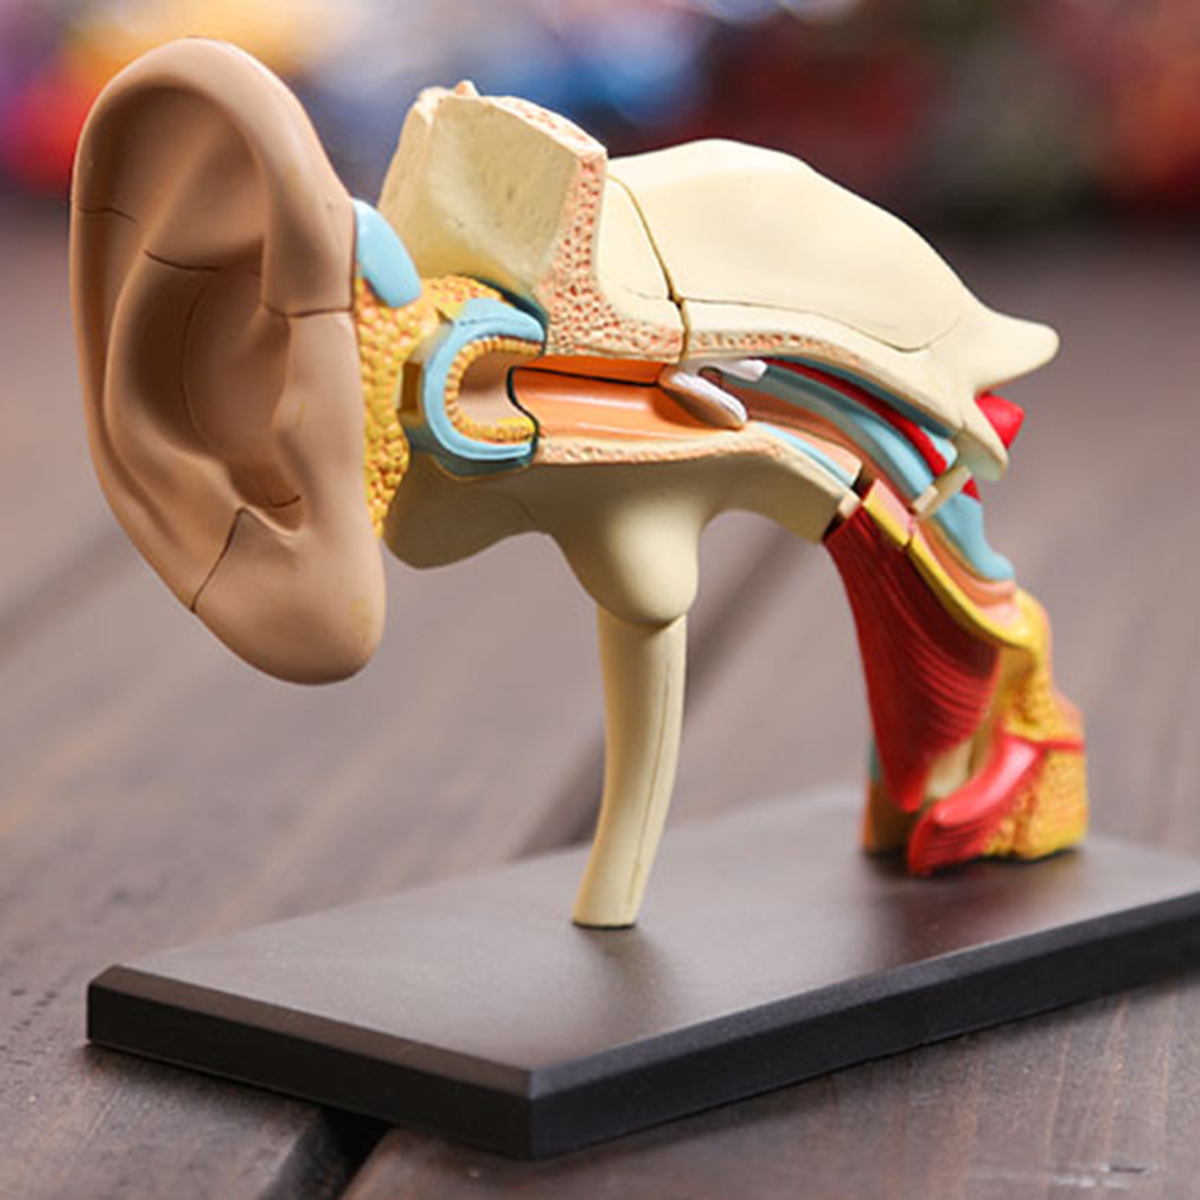 4d Vision Human Ear Anatomy Model Anatomical Medical Learn Study